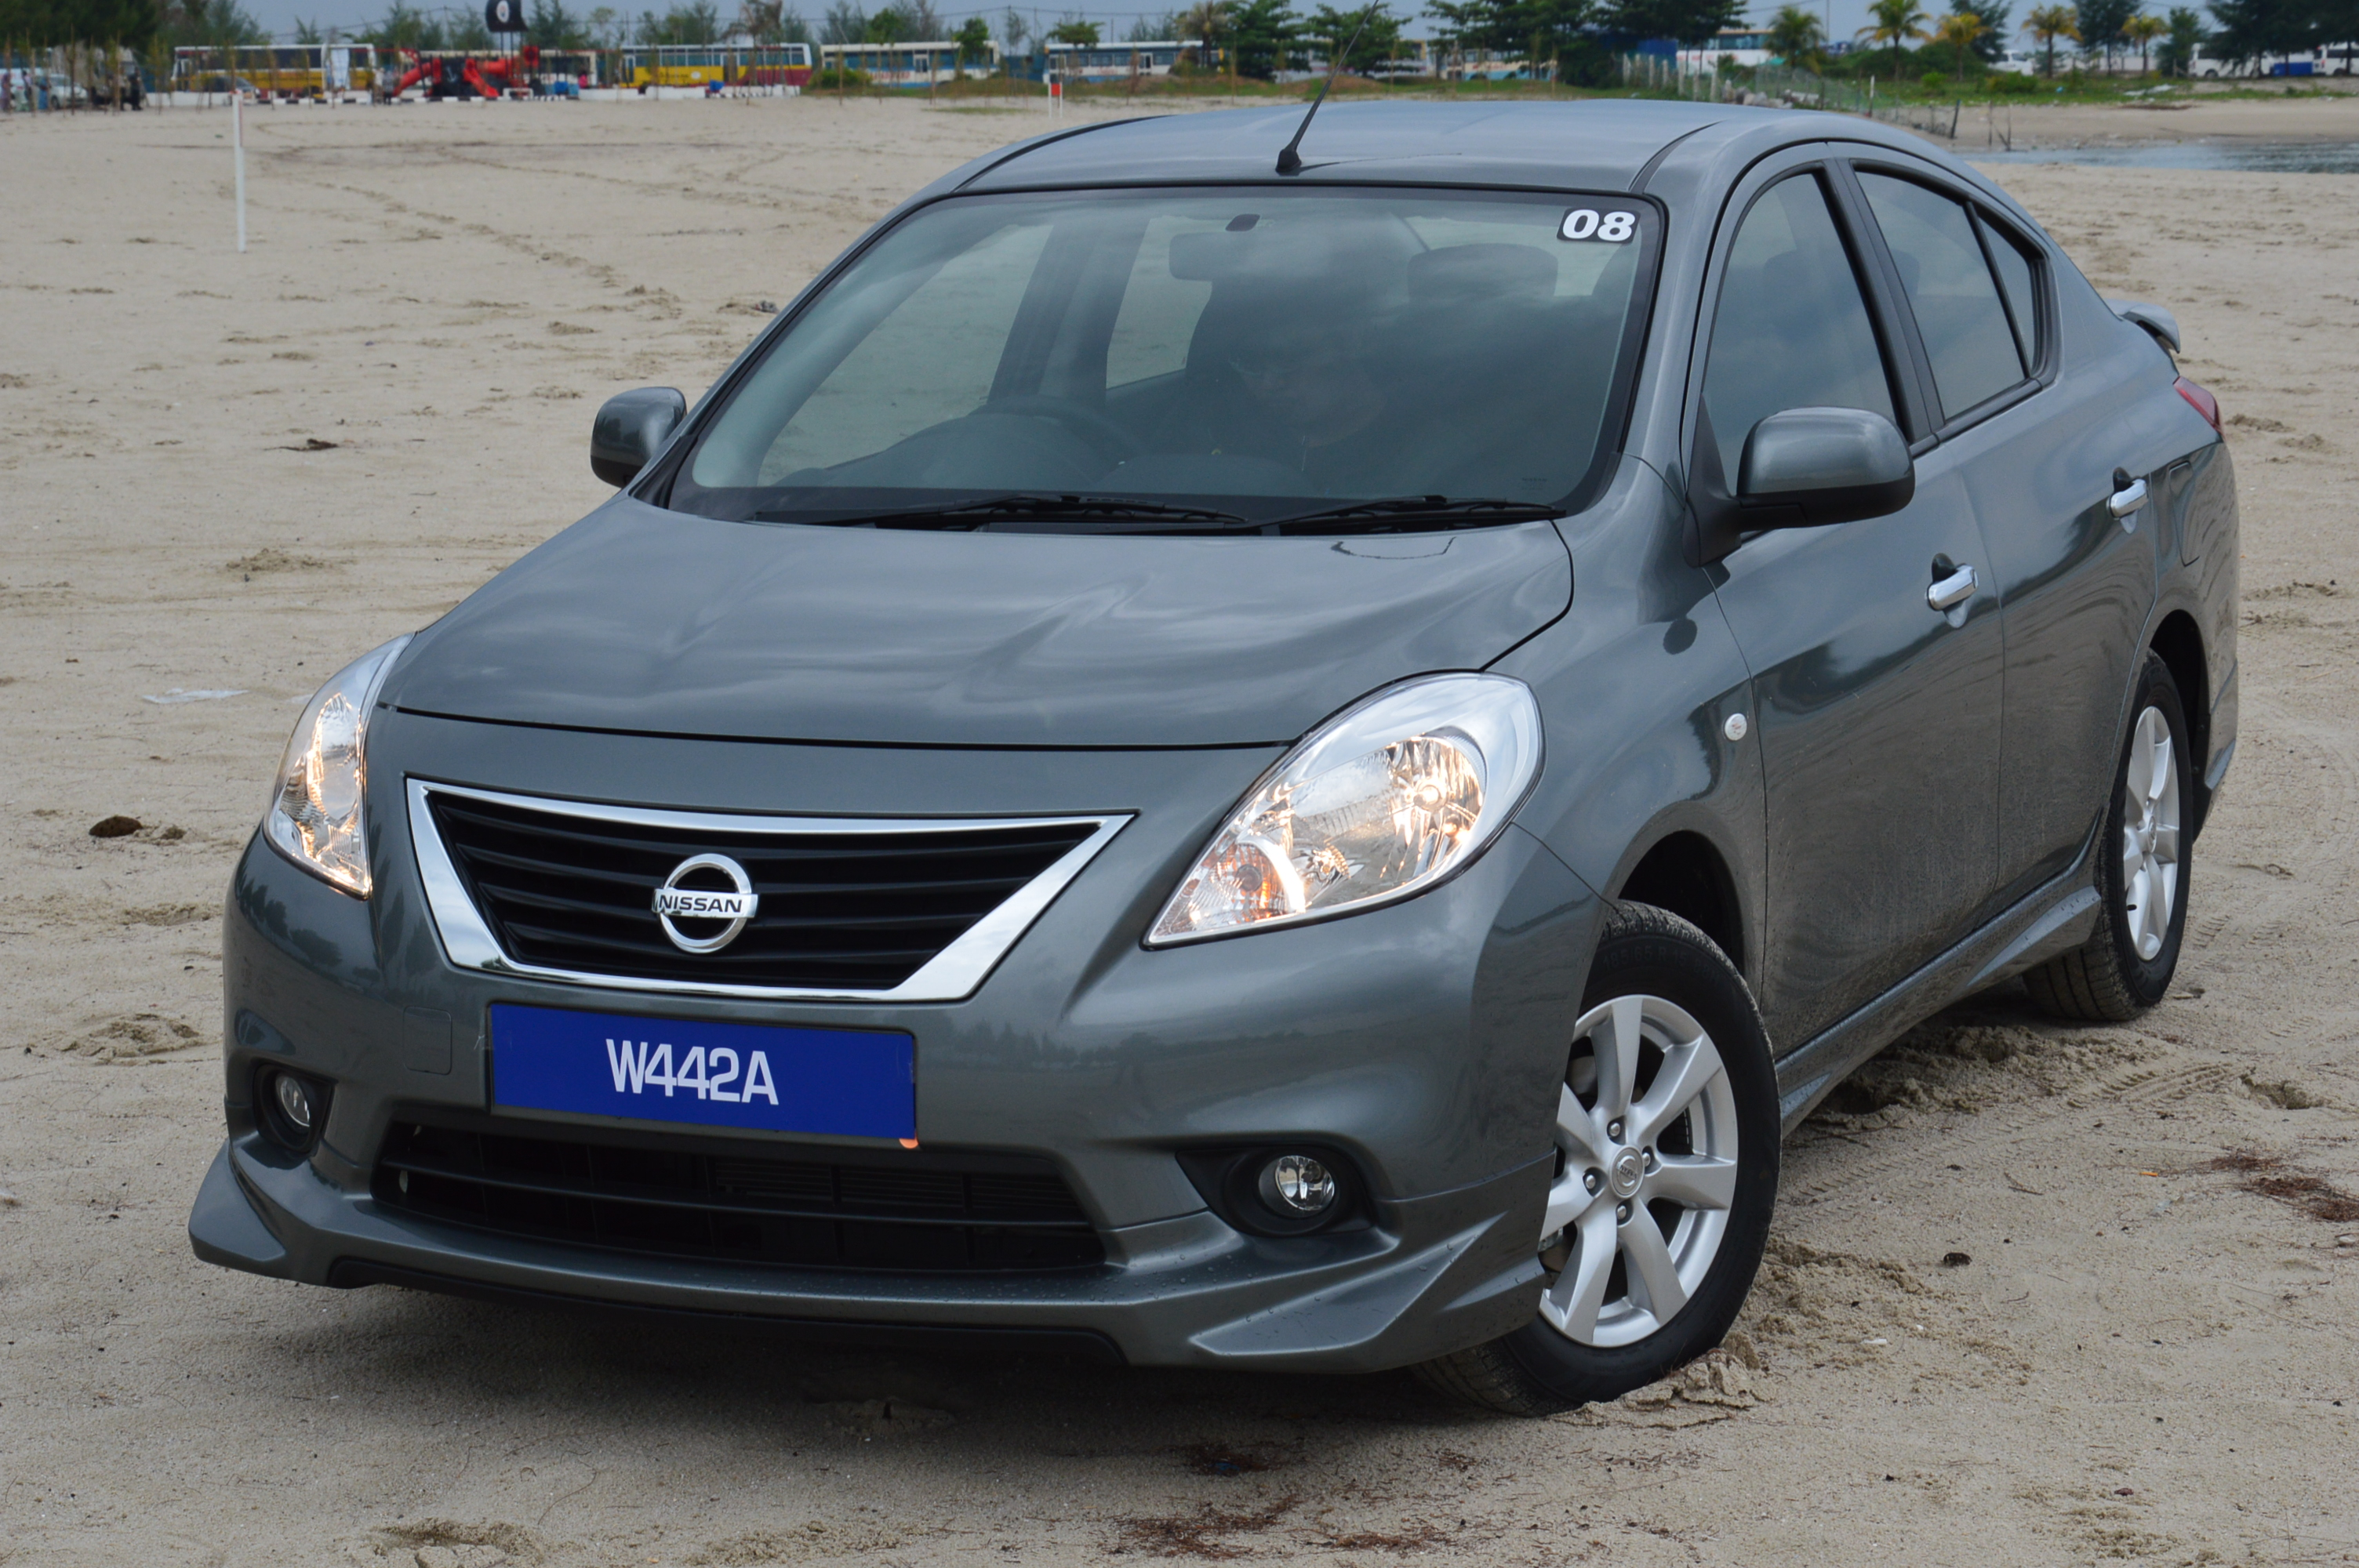 Nissan Almera 1 5 CVTC Malaysian Car Review